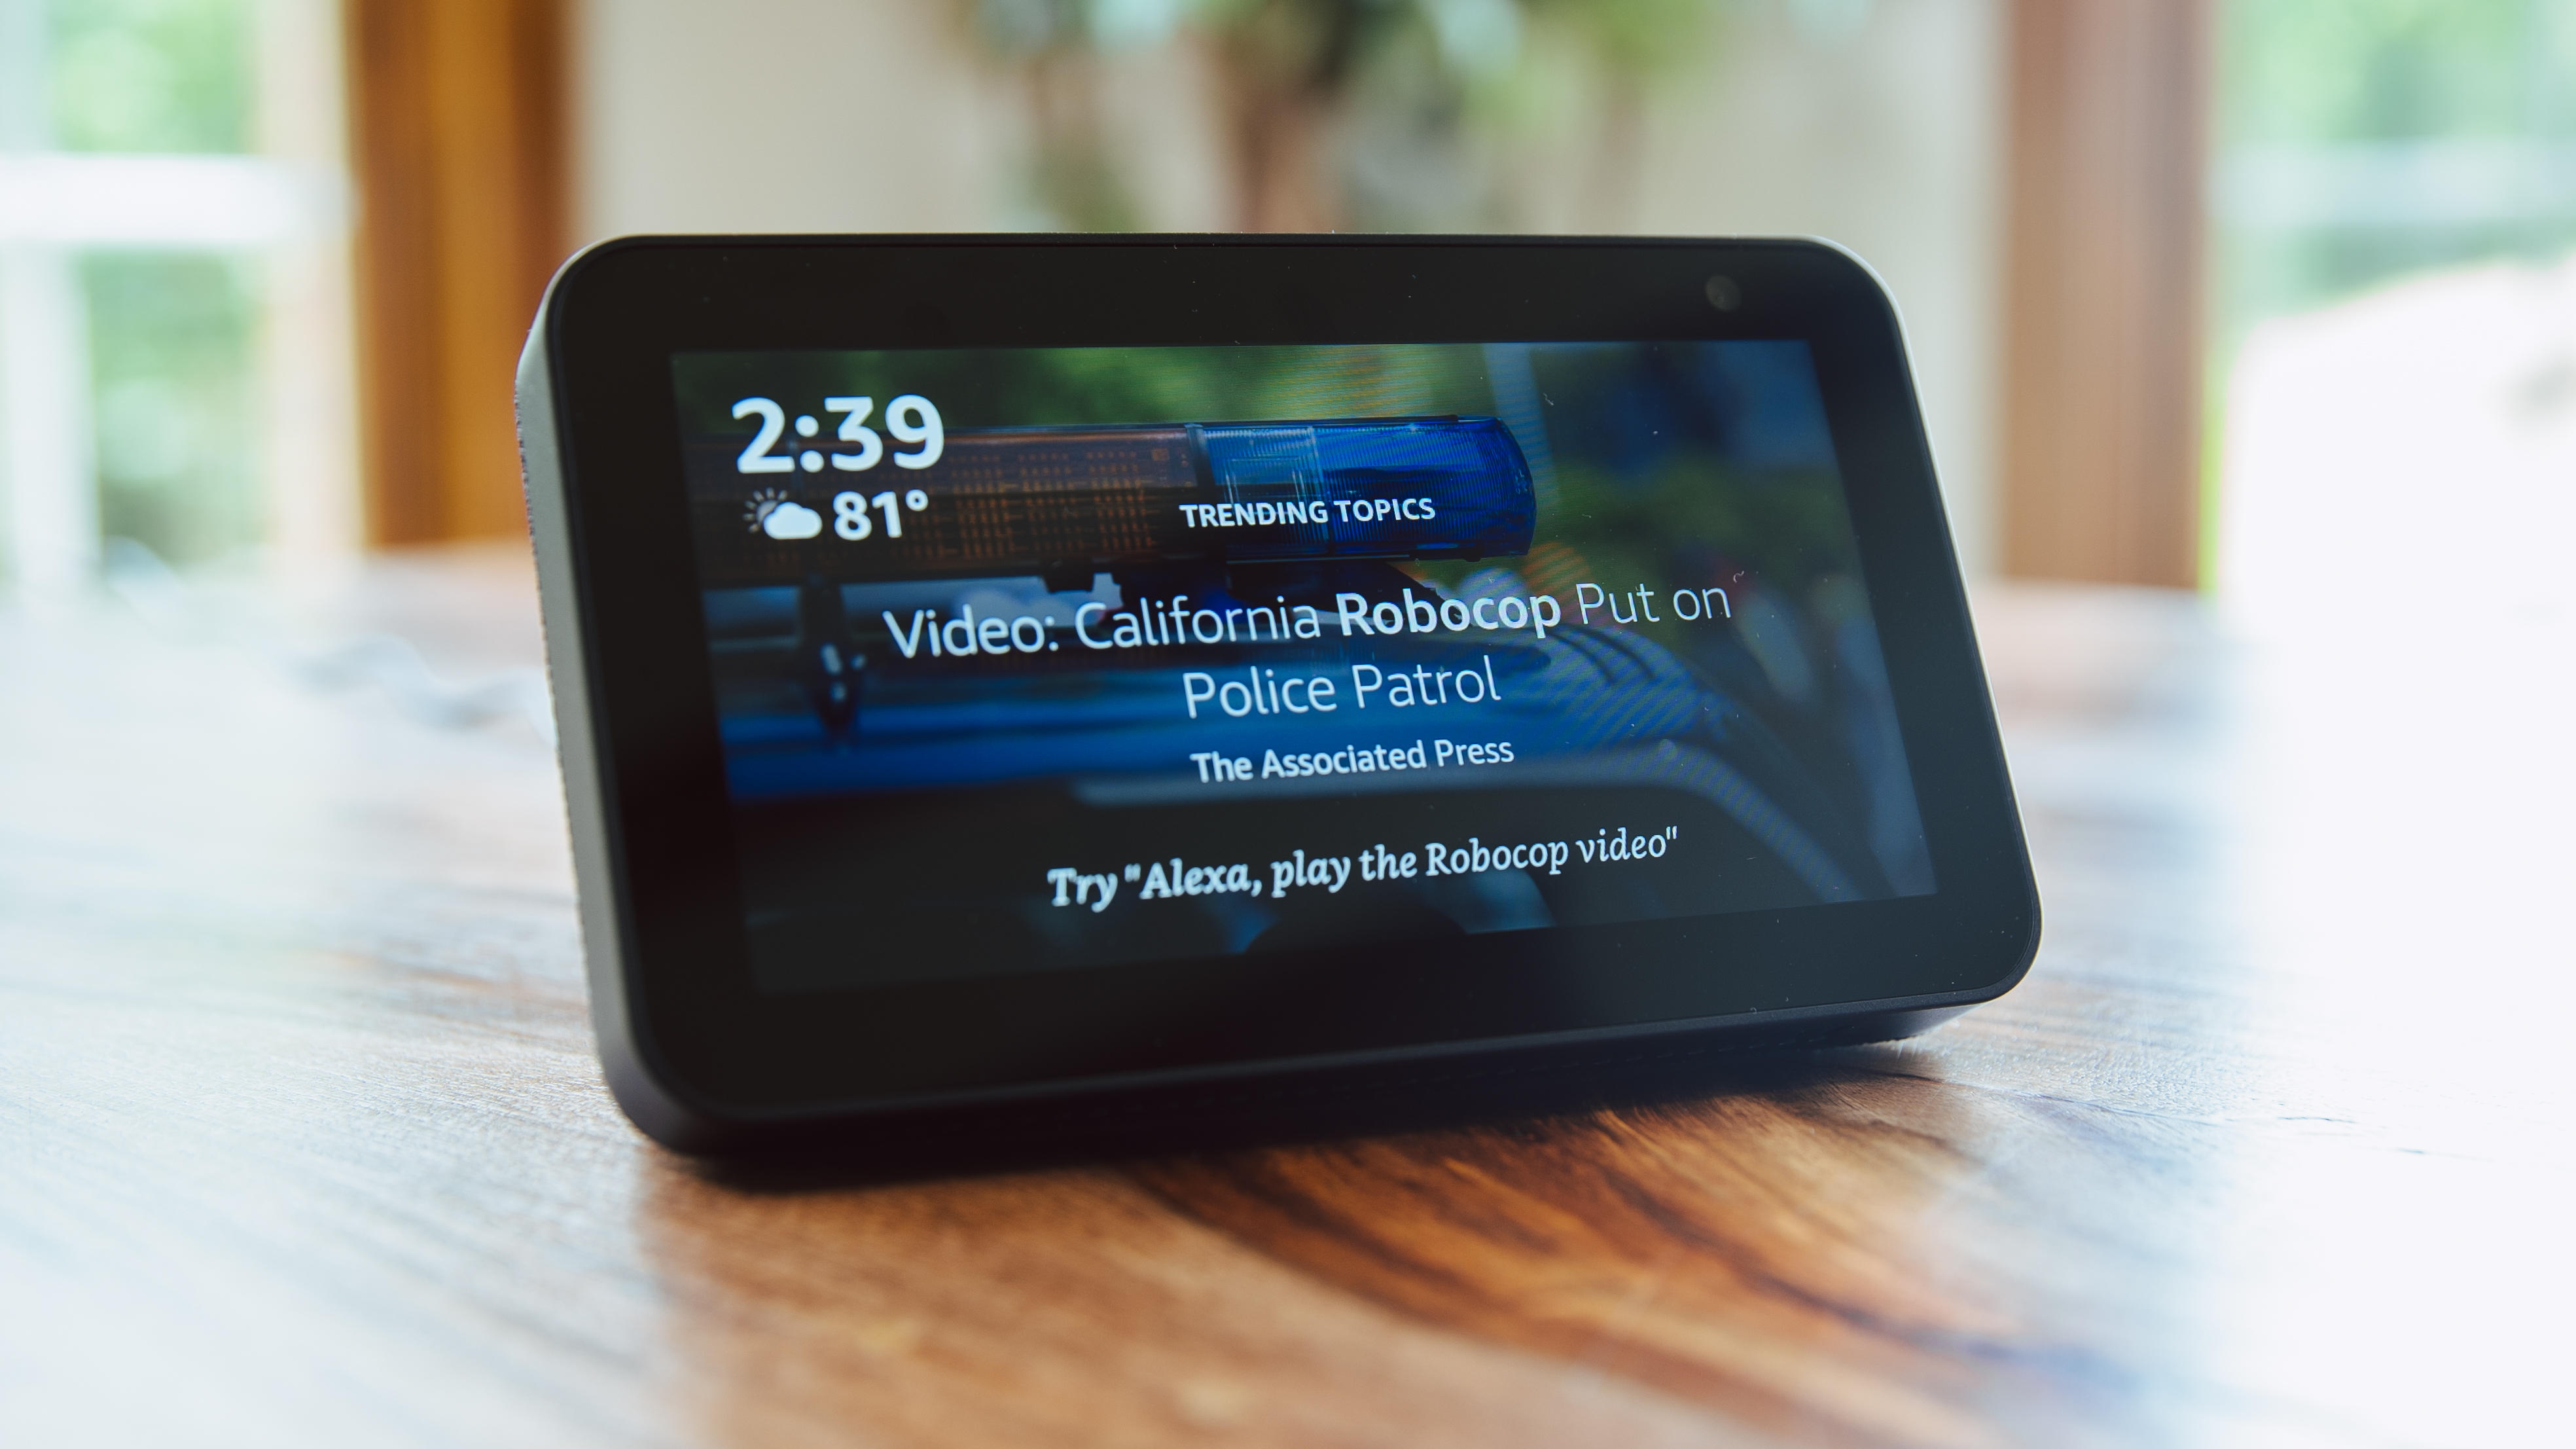 Amazon Echo Show 5 Review This New 5 Inch Alexa Display Costs Under 100 Makes Smarter Alarm Clock Cnet